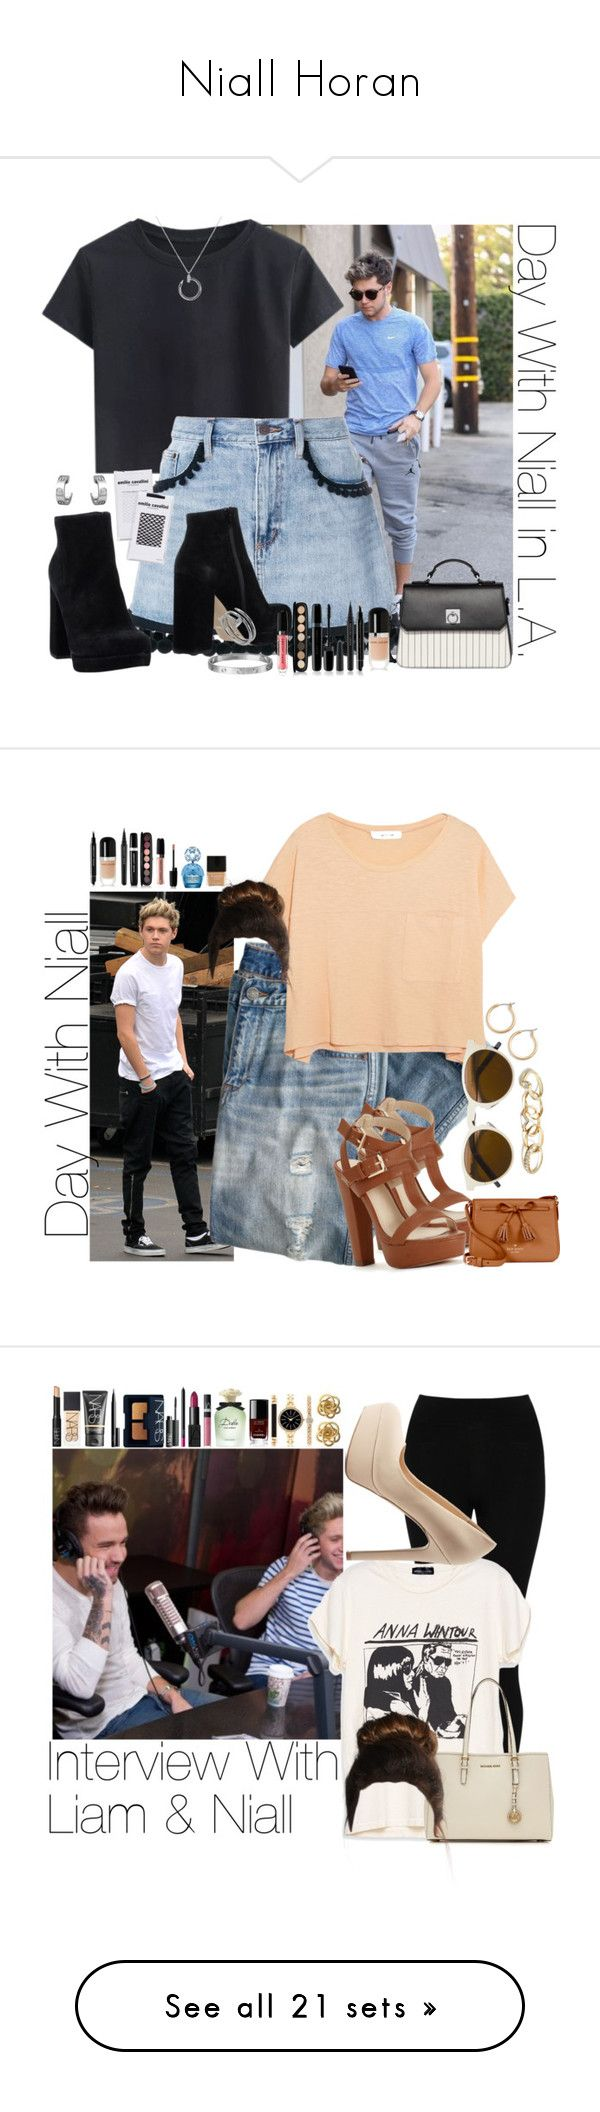 """Niall Horan"" by barbarahs ❤ liked on Polyvore featuring Marc Jacobs, UnLace, Emilio Cavallini, Fiorelli, Cartier, OneDirection, NiallHoran, J.Crew, Elizabeth and James and Butter London"